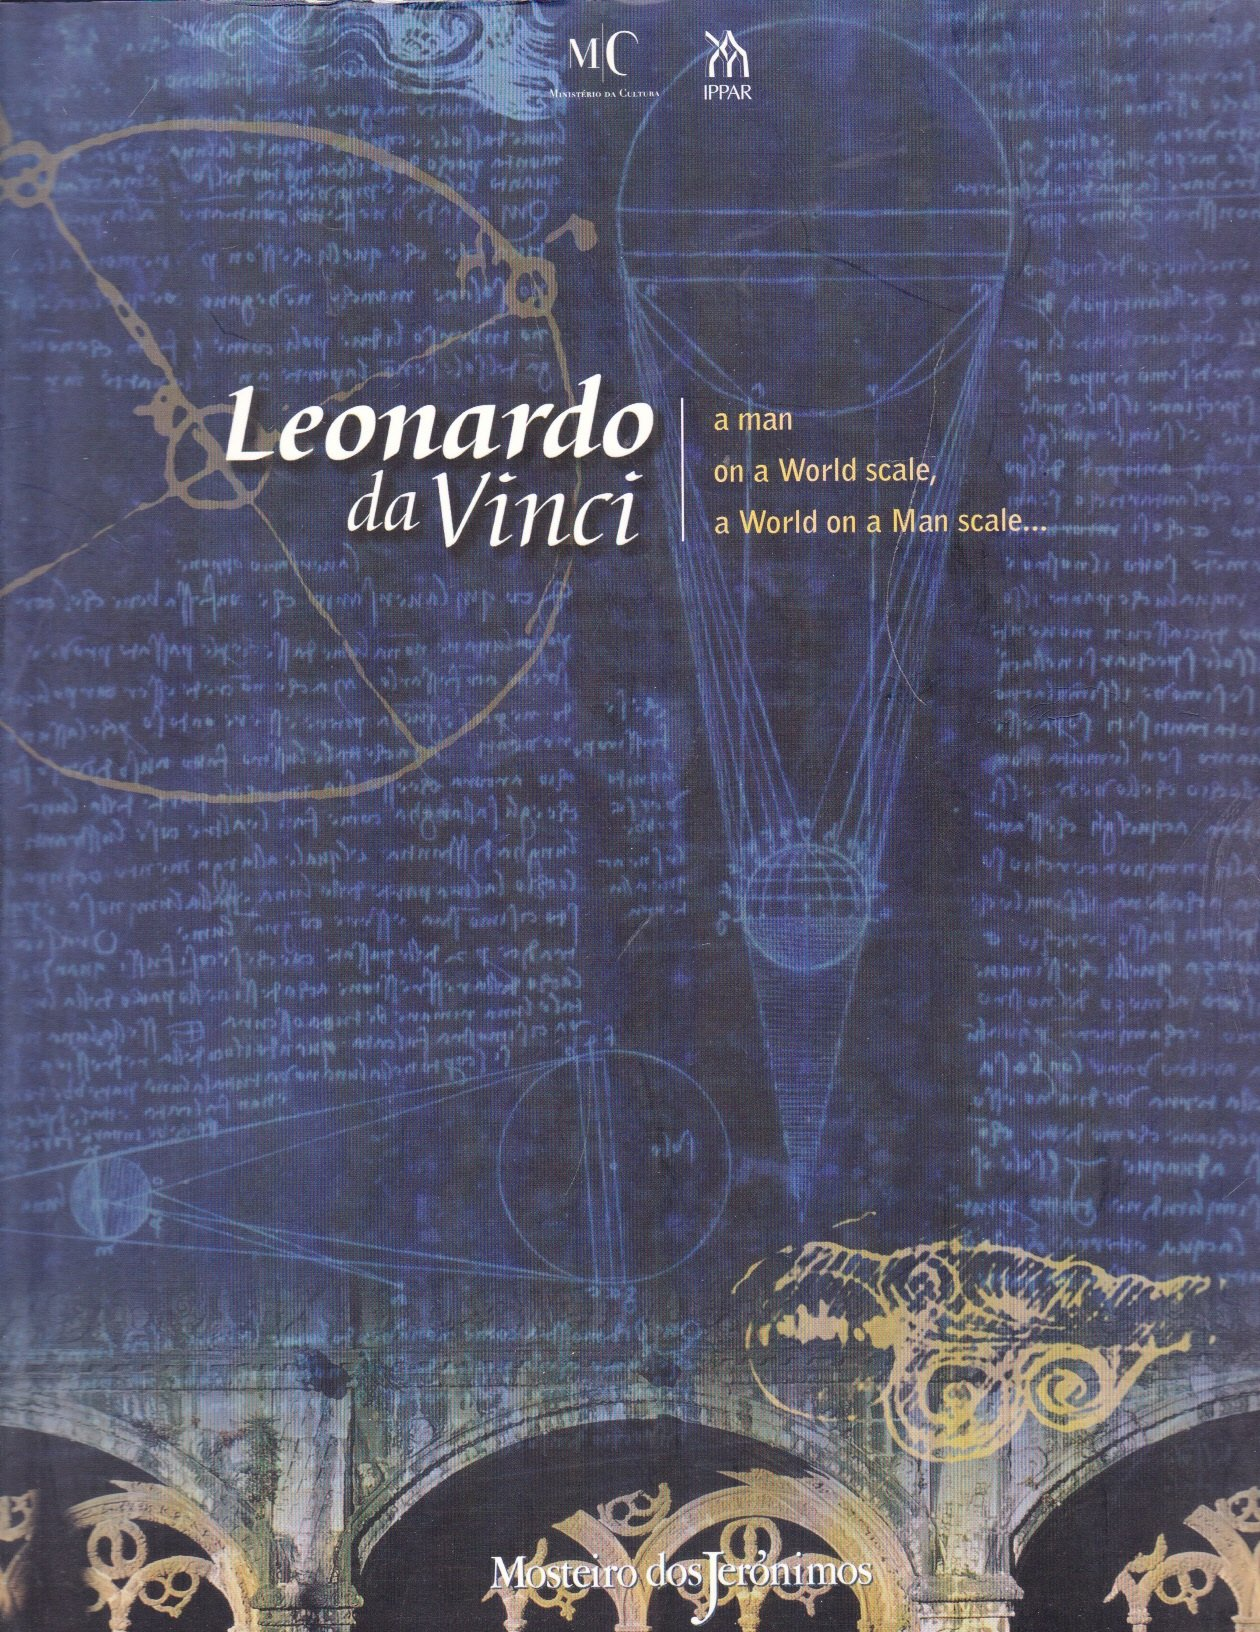 leonardo da vinci a man of a world scale a world on a man scale